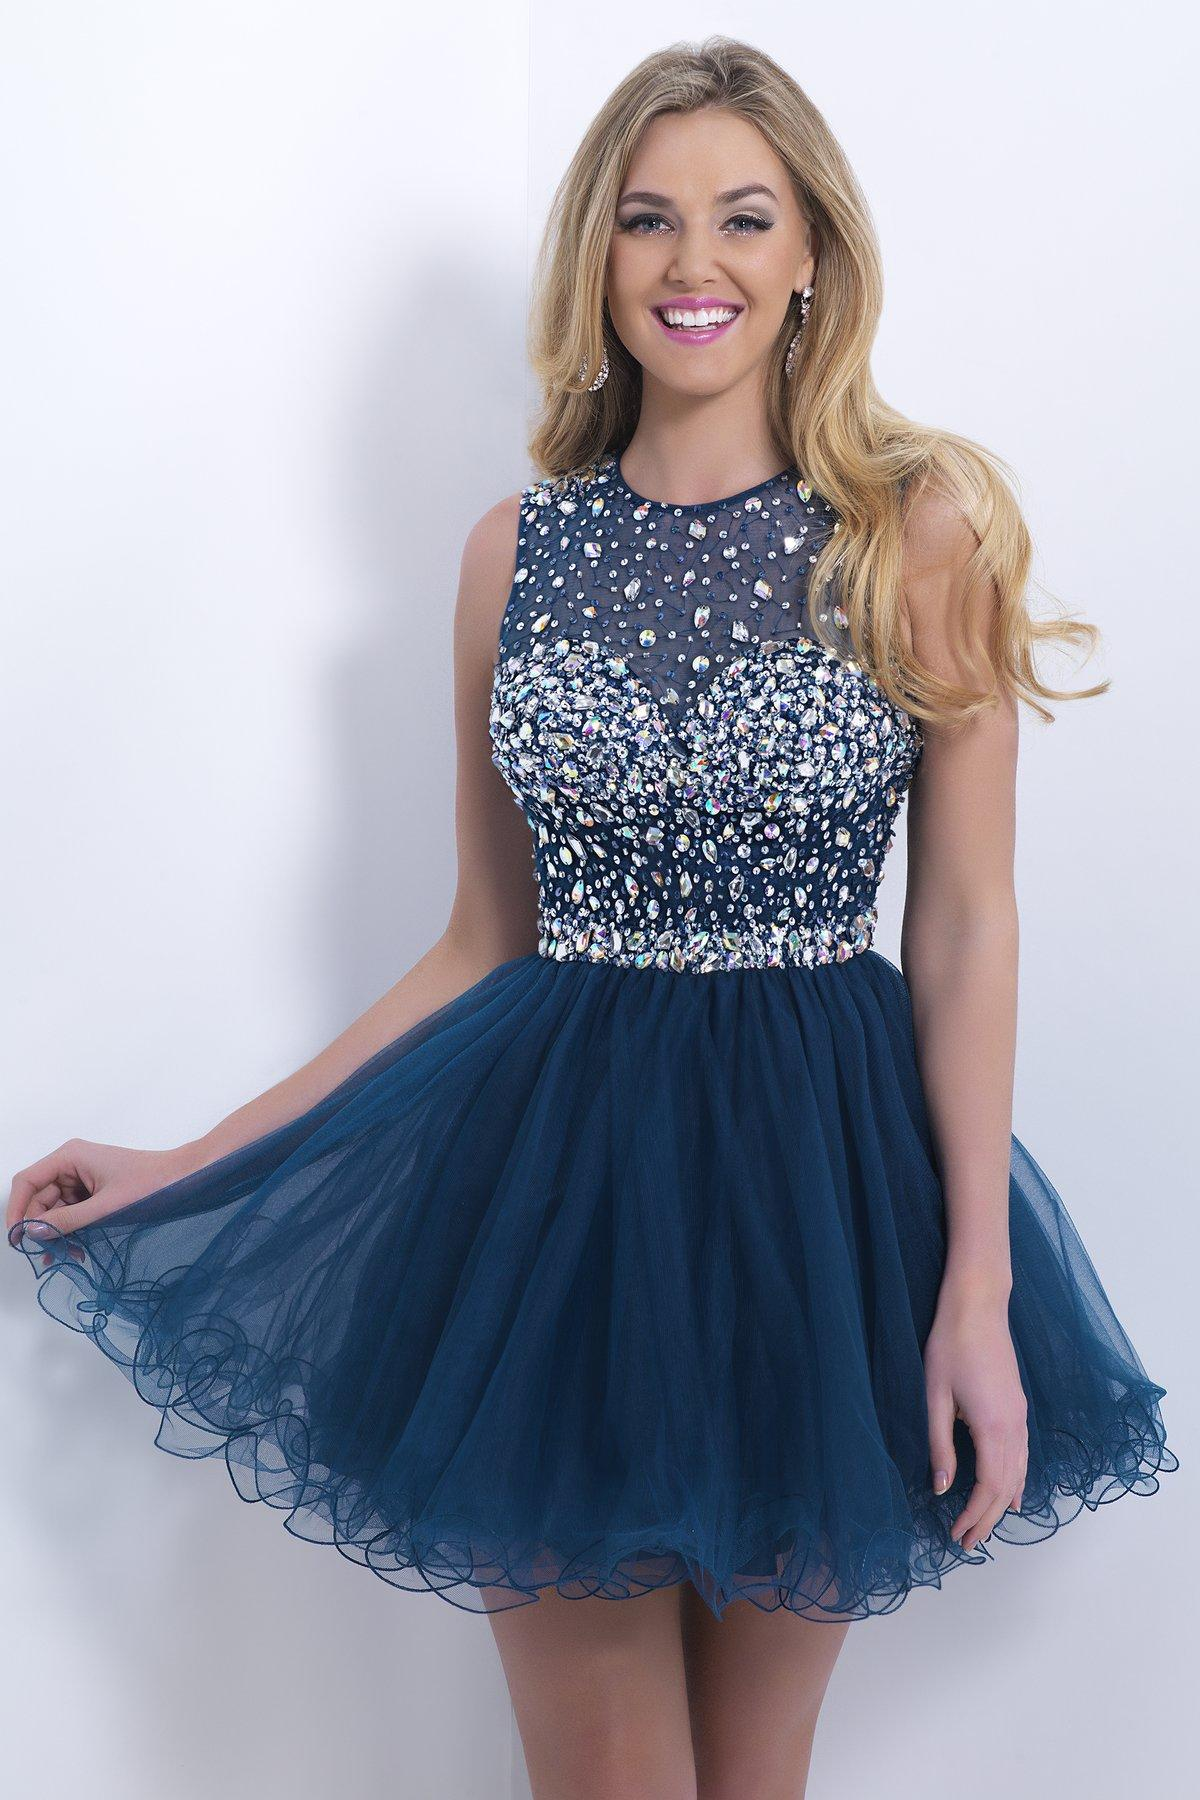 Blue Short Junior Prom Dresses Suppliers  Best Blue Short Junior ...